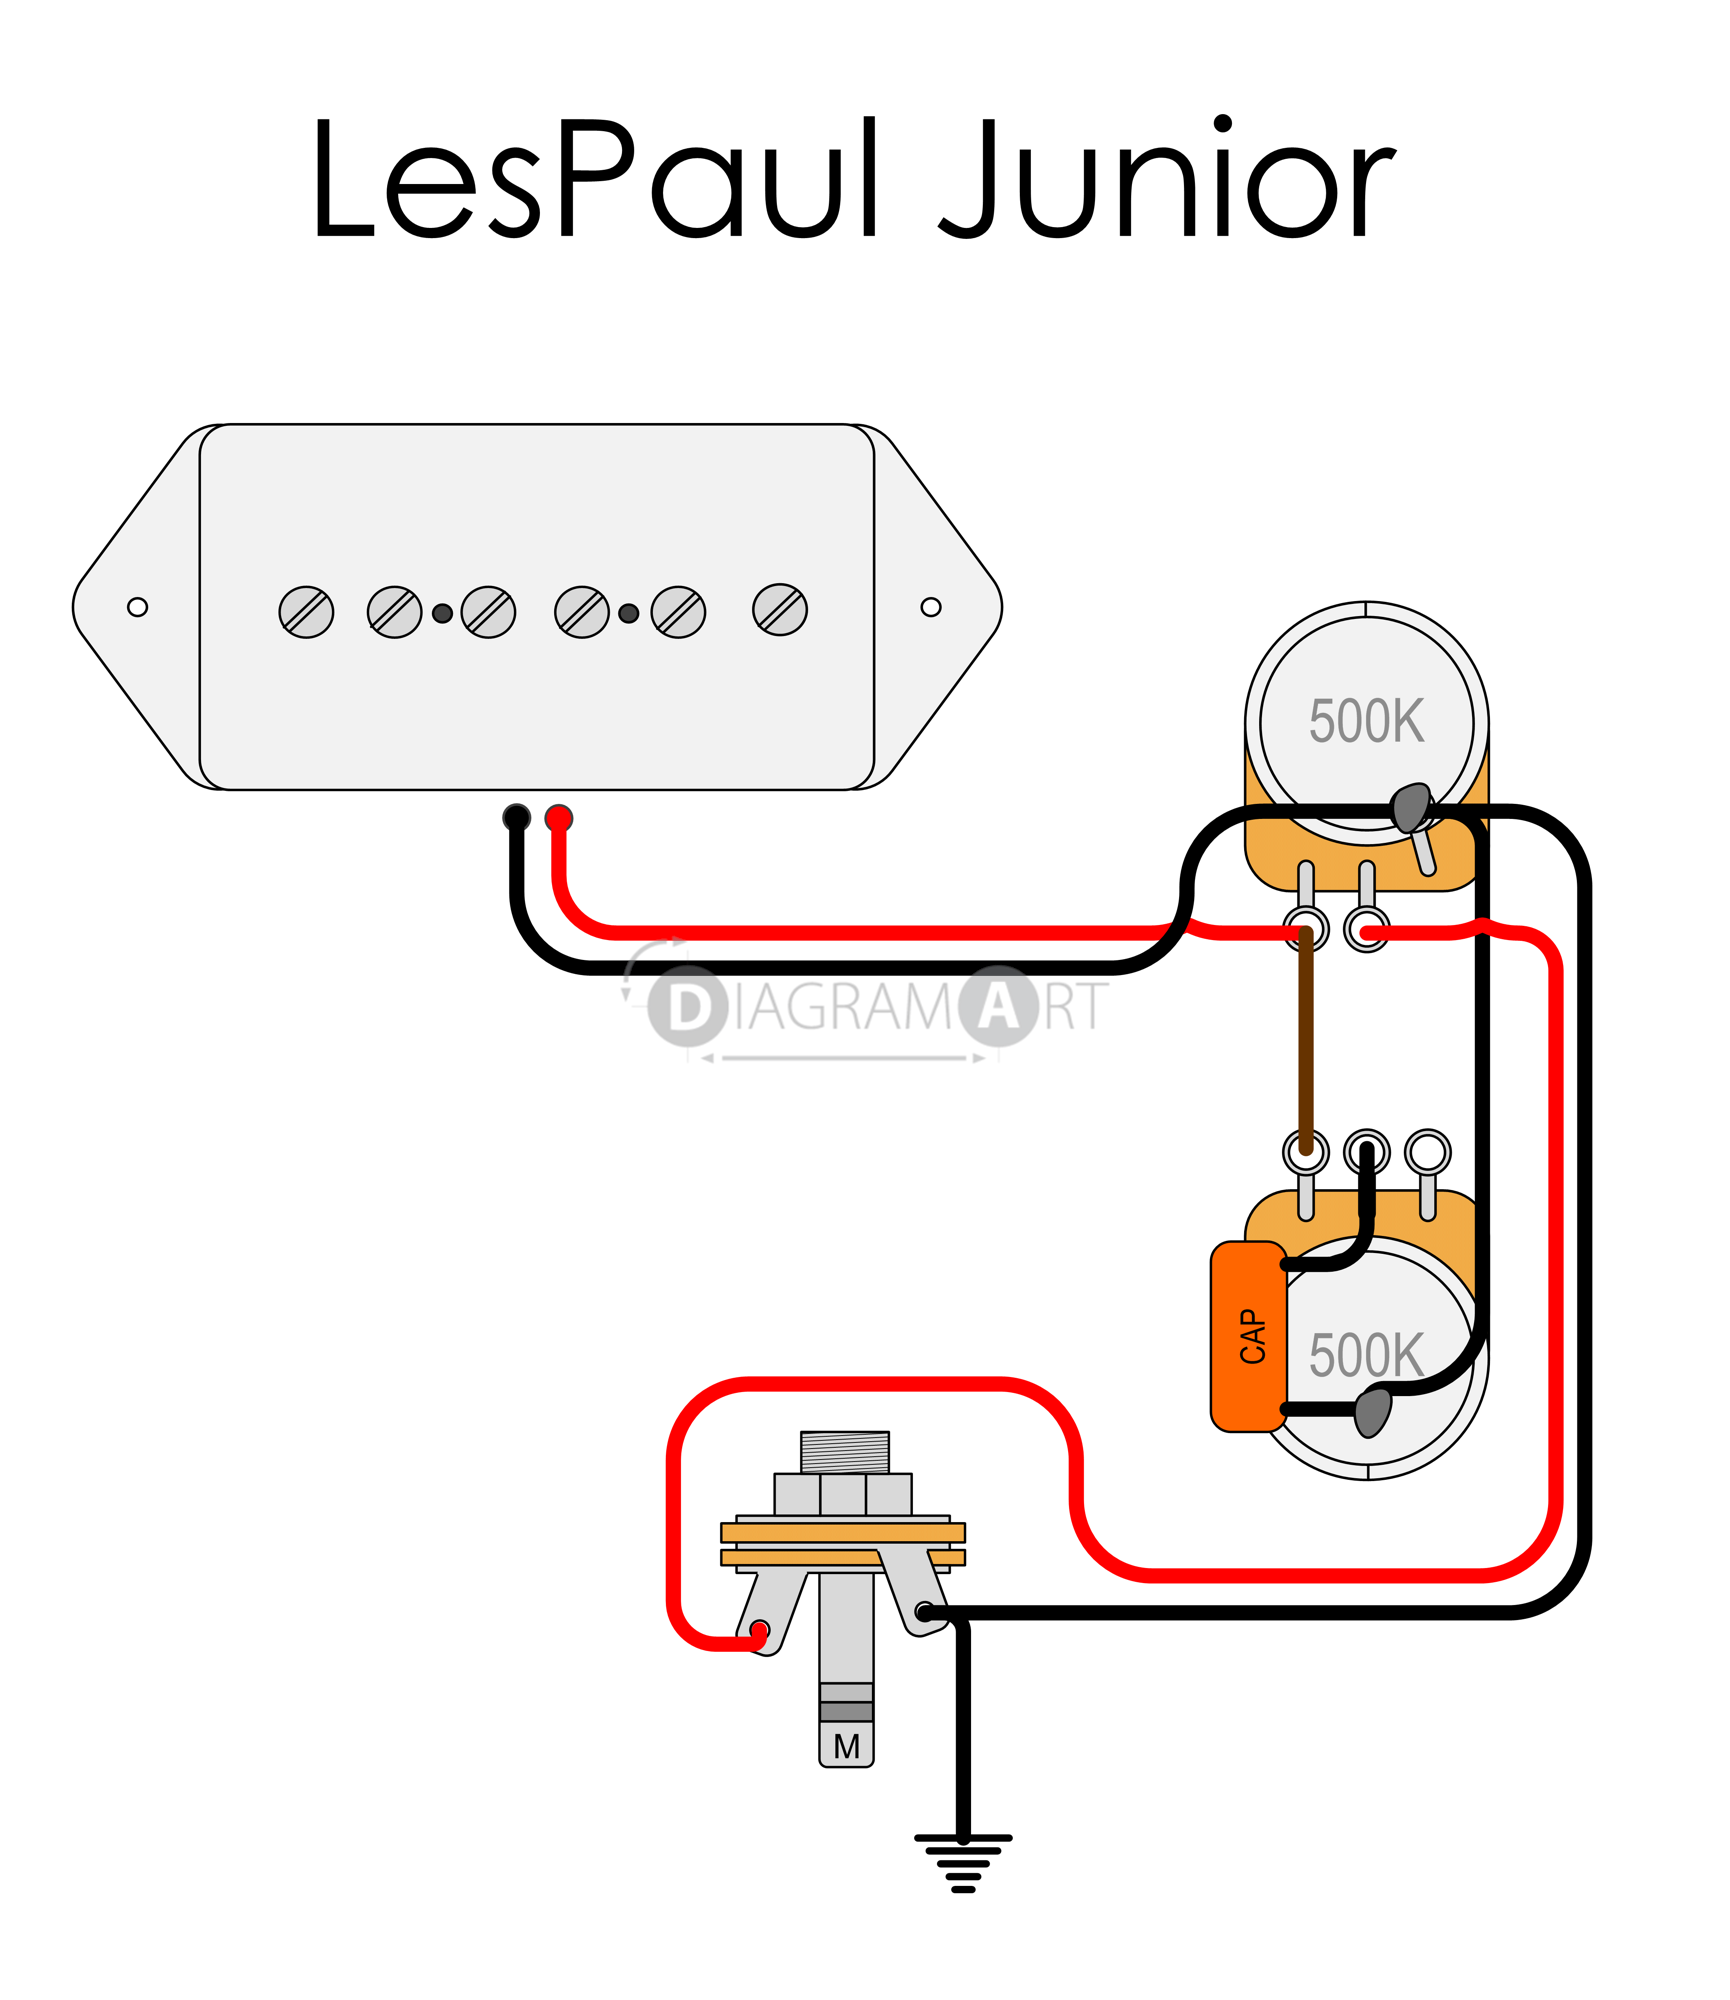 Les paul custom wiring wiring diagram gibson les paul junior wiring diagram hecho wiring diagram epiphone les paul wiring labeled les paul custom wiring cheapraybanclubmaster Image collections